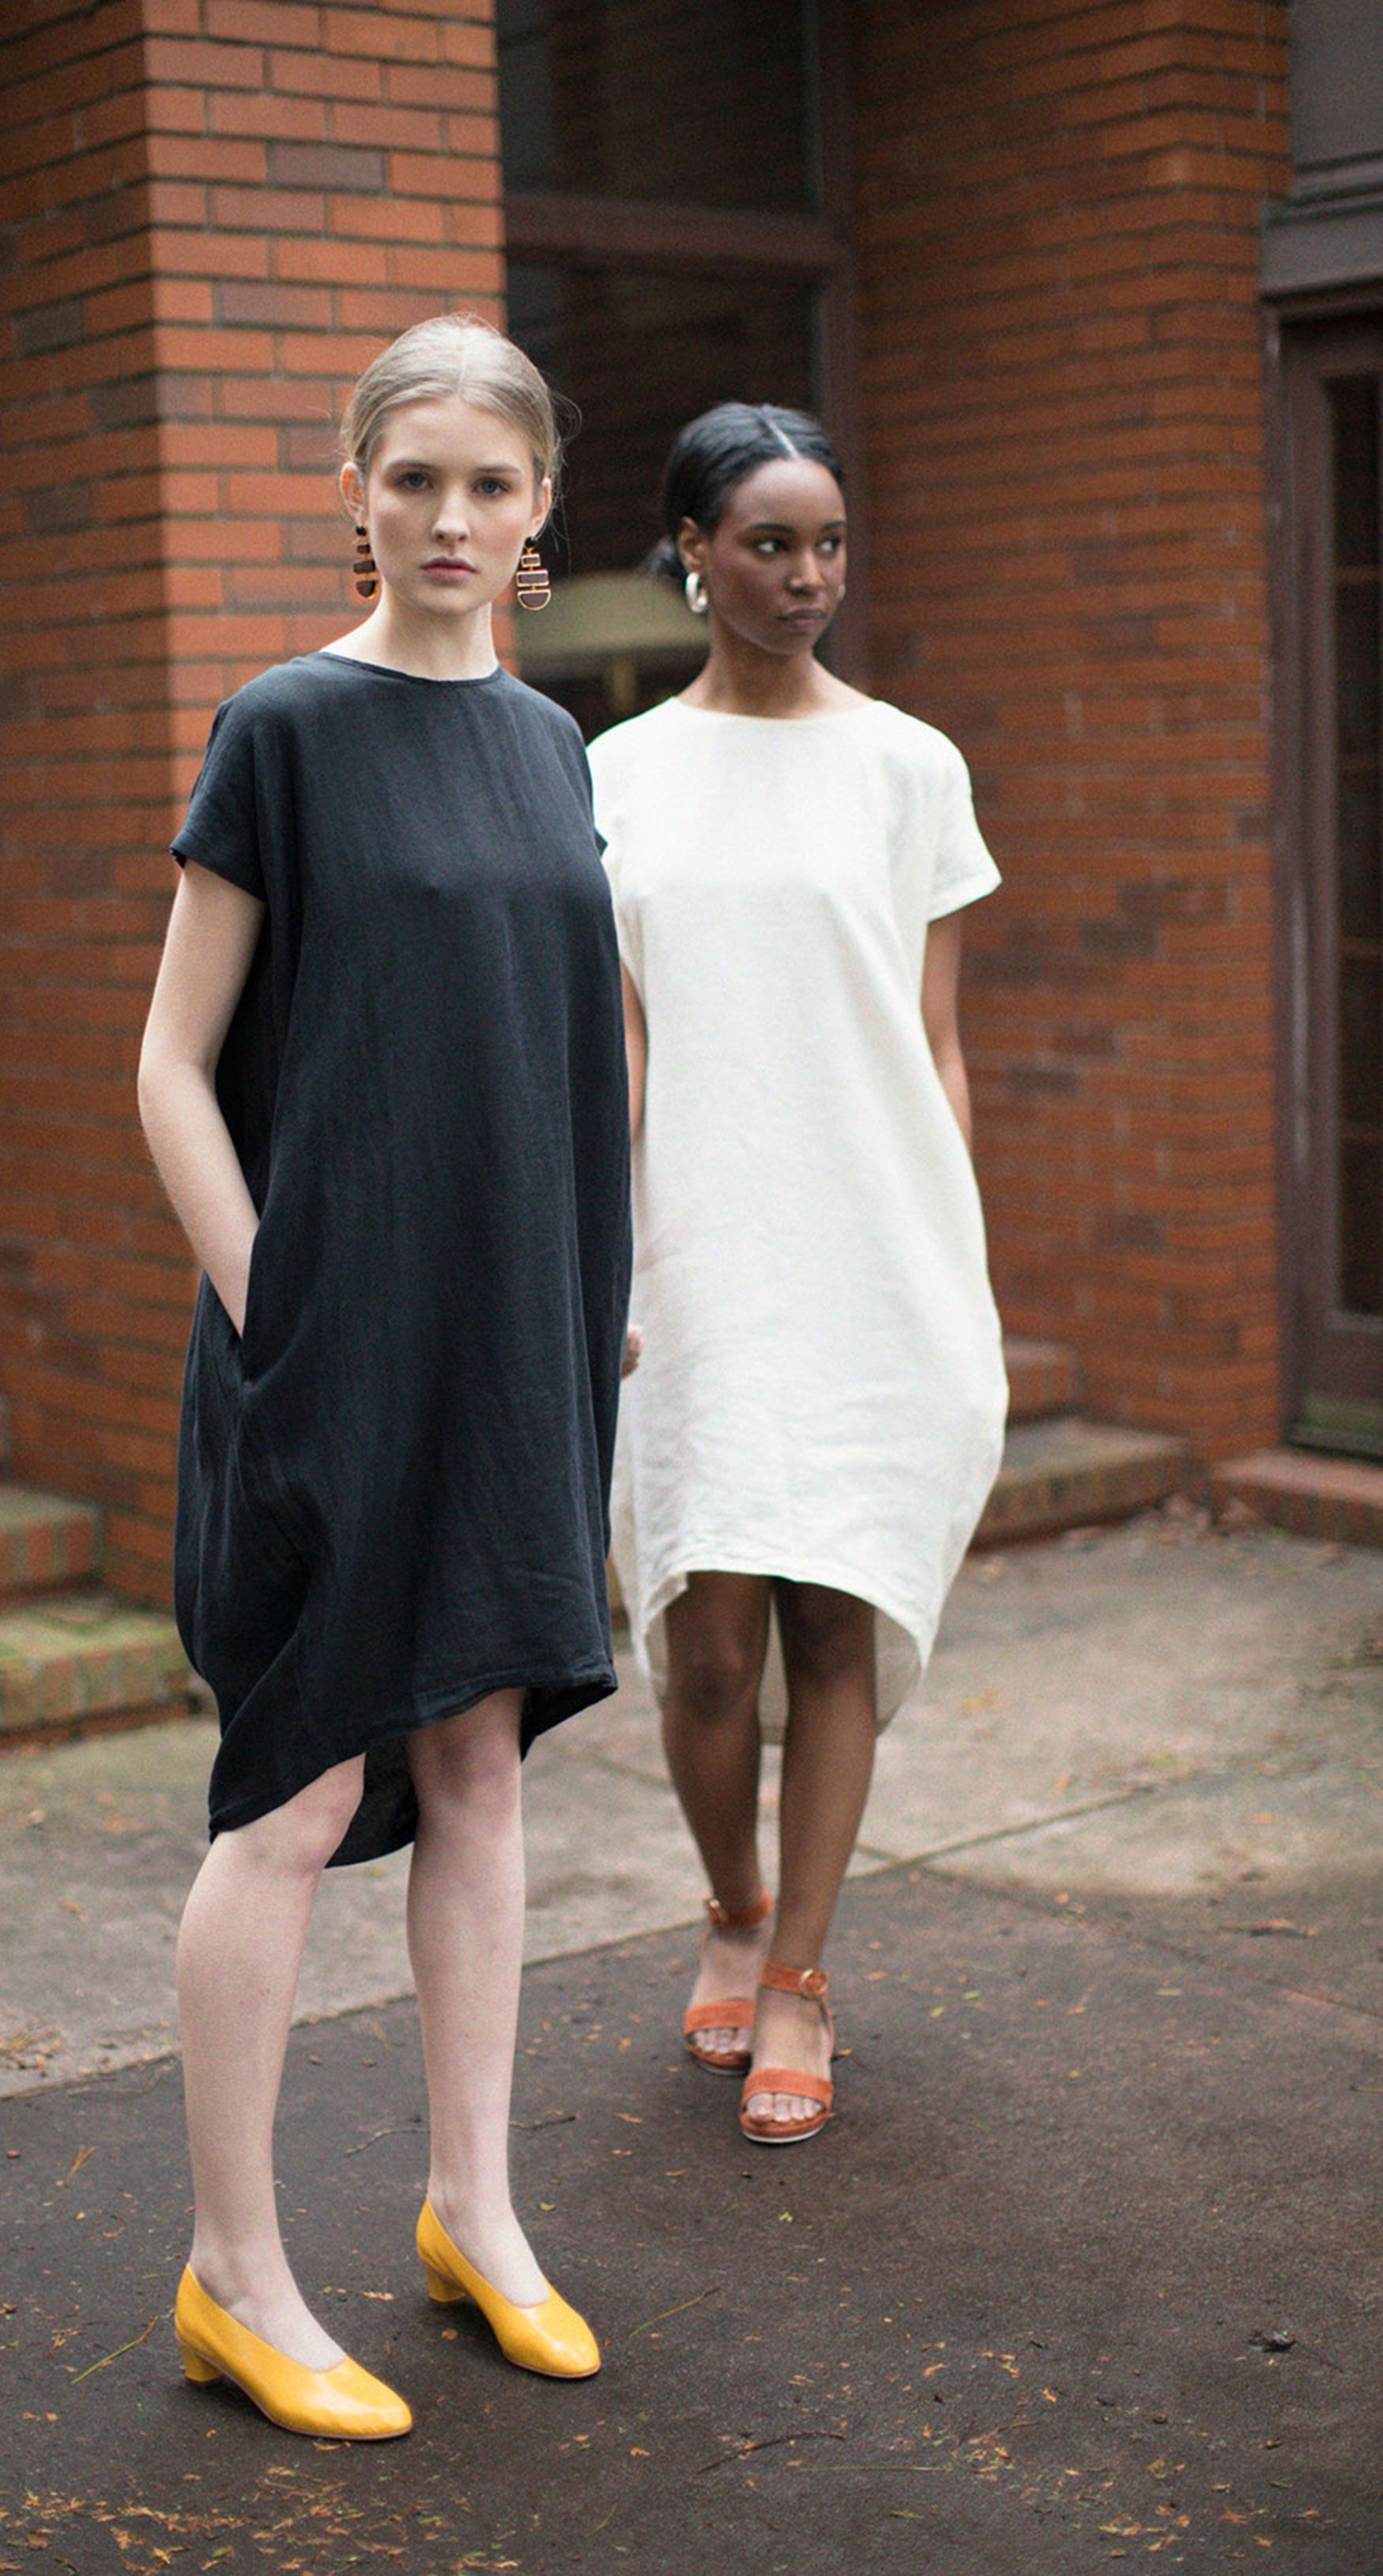 Black Crane Pleated Cocoon Dress in Black & Cream with Martiniano Yellow  High Glove & Lizzie